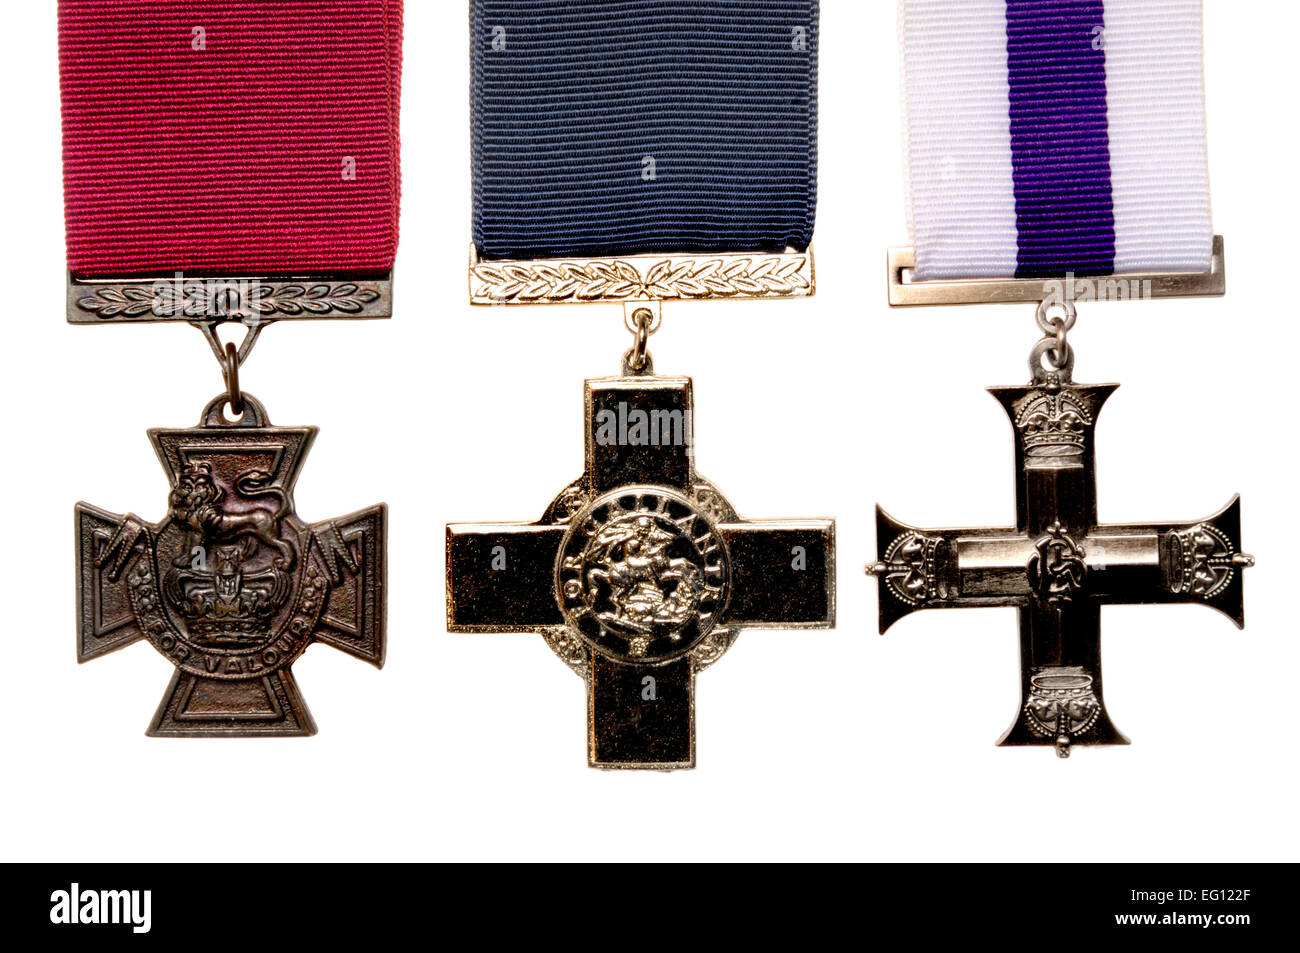 Victoria Cross, George Cross; Military Cross. British awards for gallantry - Stock Image